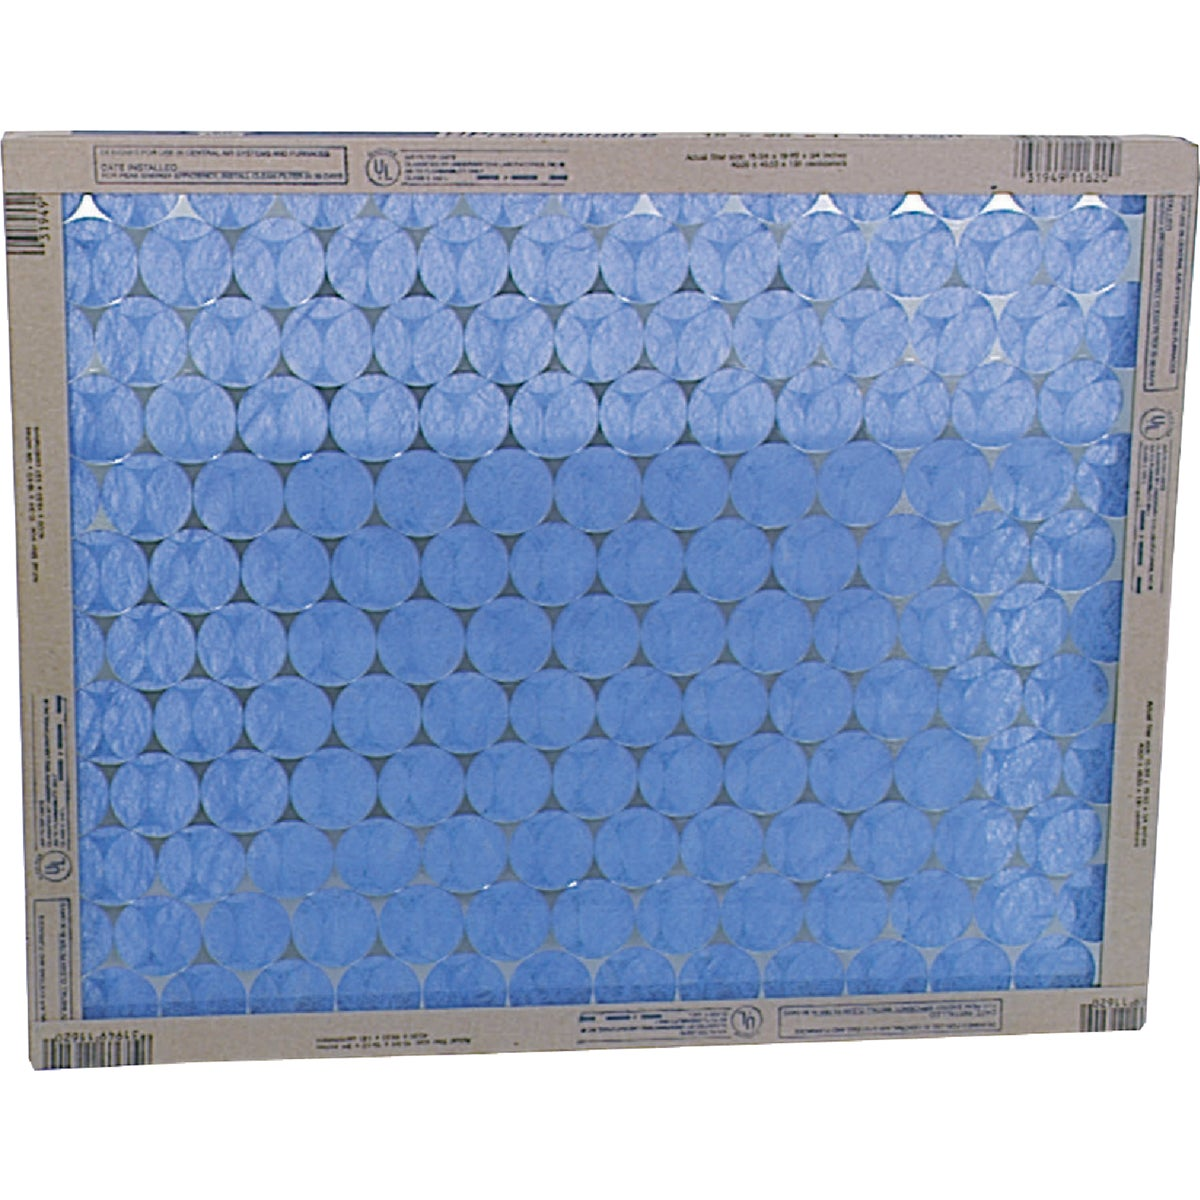 8X14 FURNACE FILTER - 10255.01814 by Flanders Corp